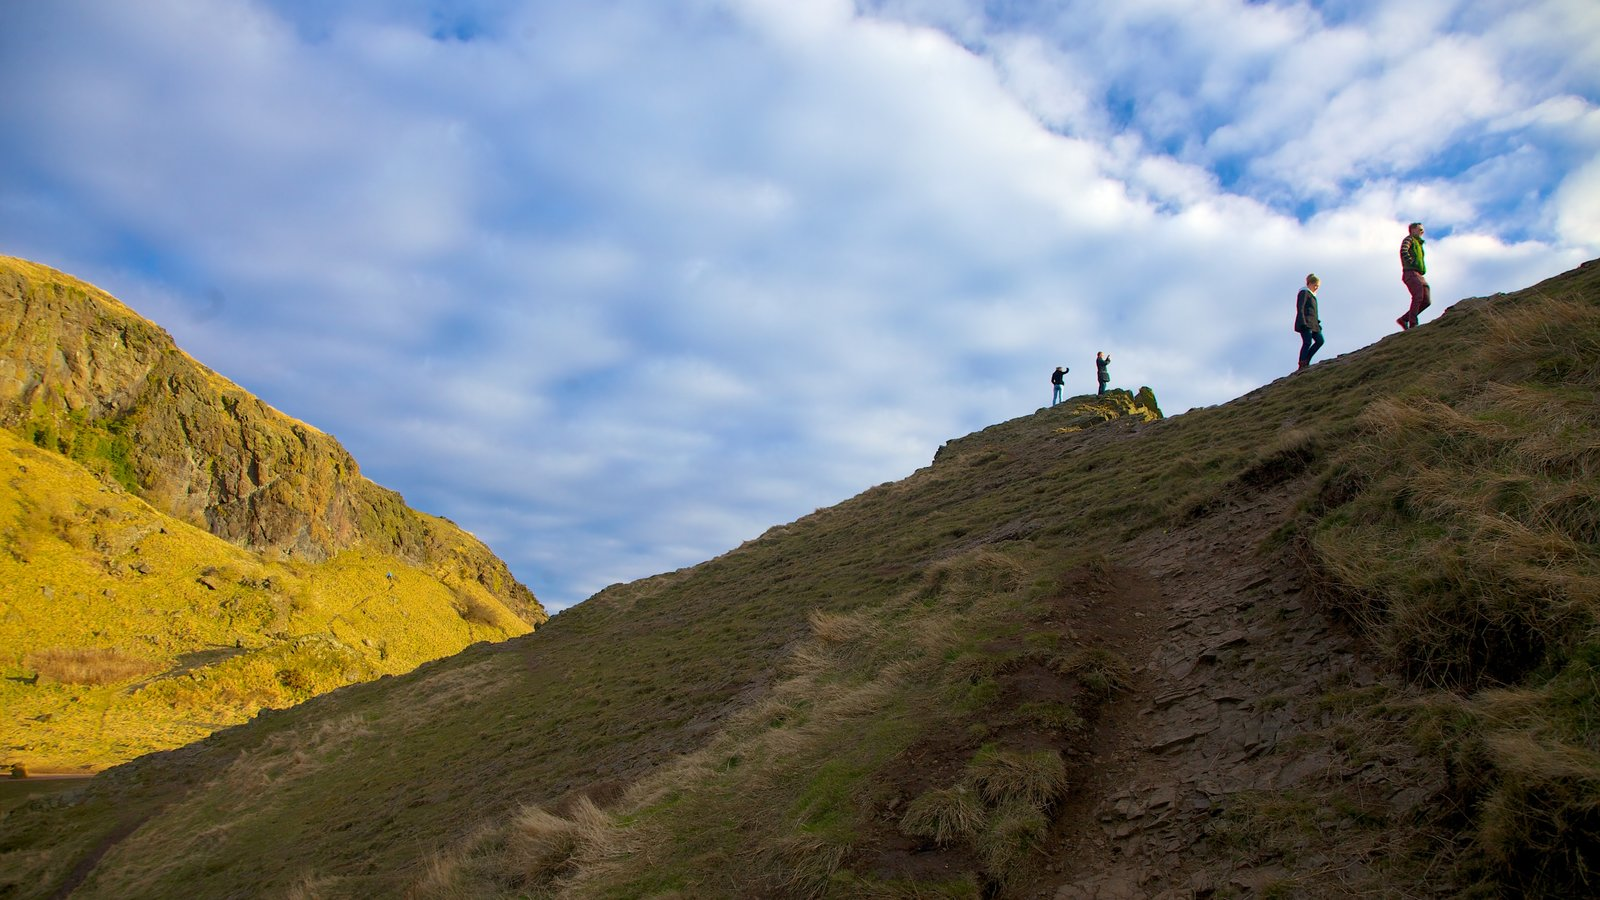 Arthur\\\'s Seat which includes hiking or walking, mountains and tranquil scenes